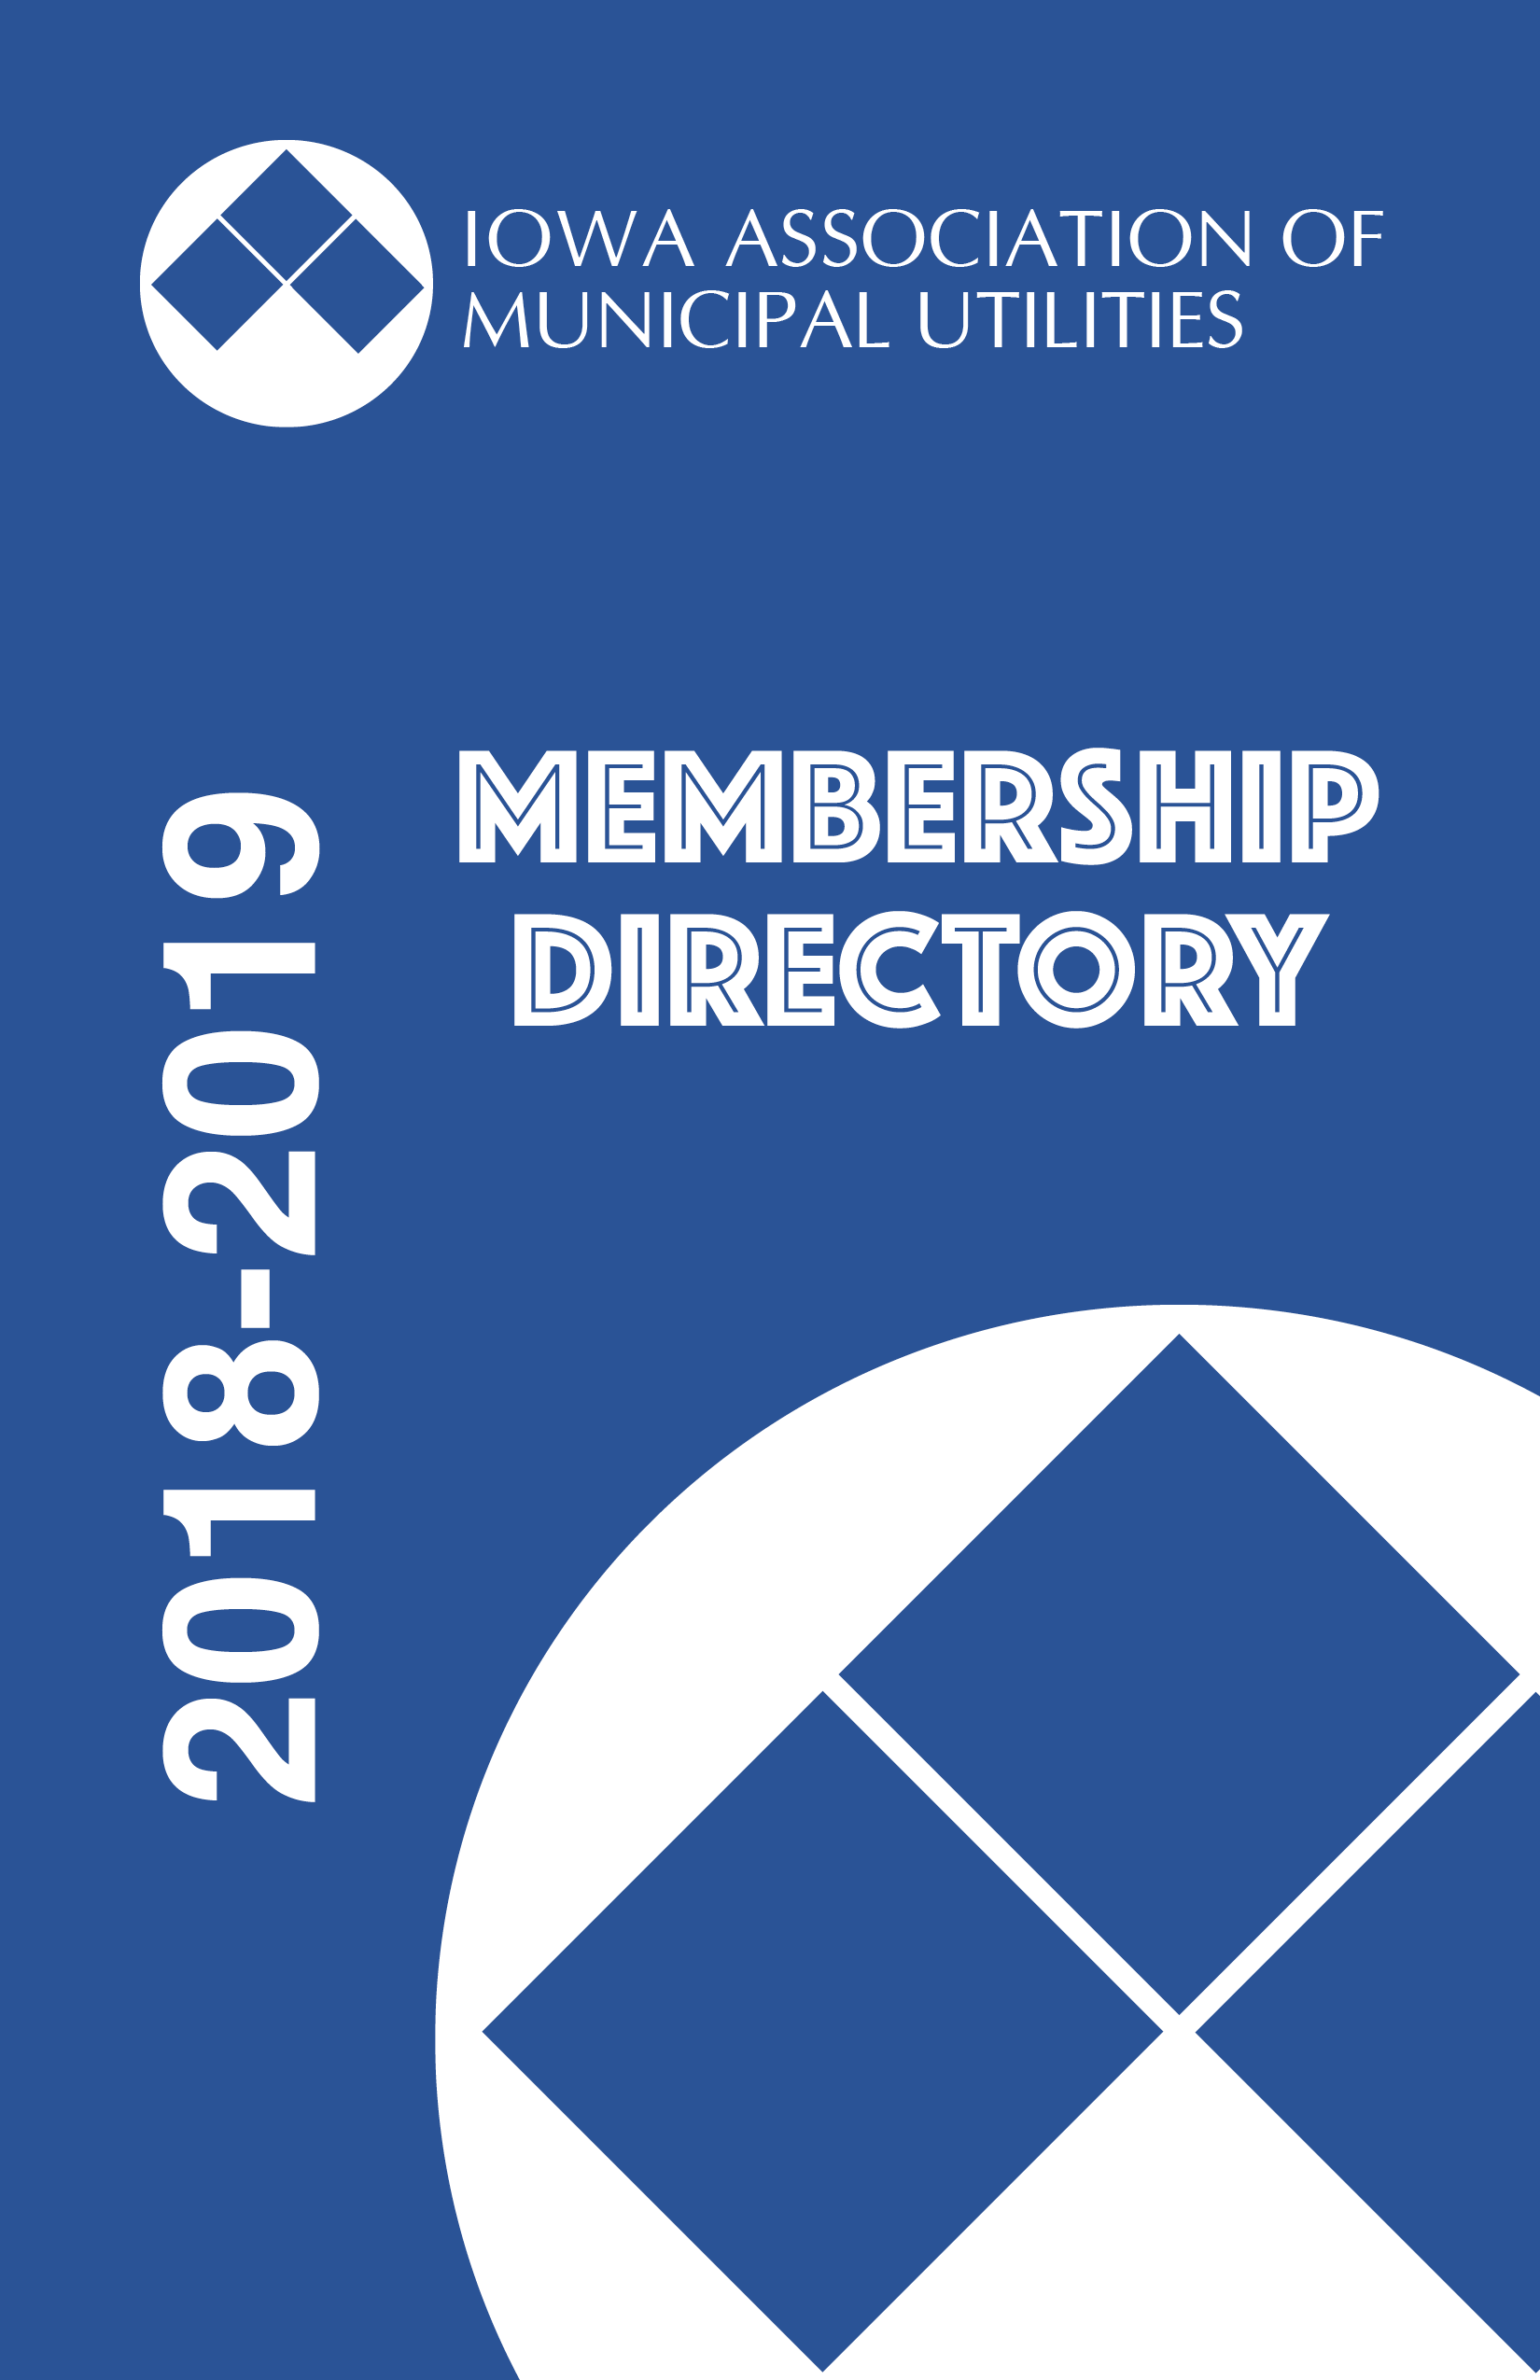 428893551 The 2018-2019 IAMU Membership Directories have been mailed. All utility